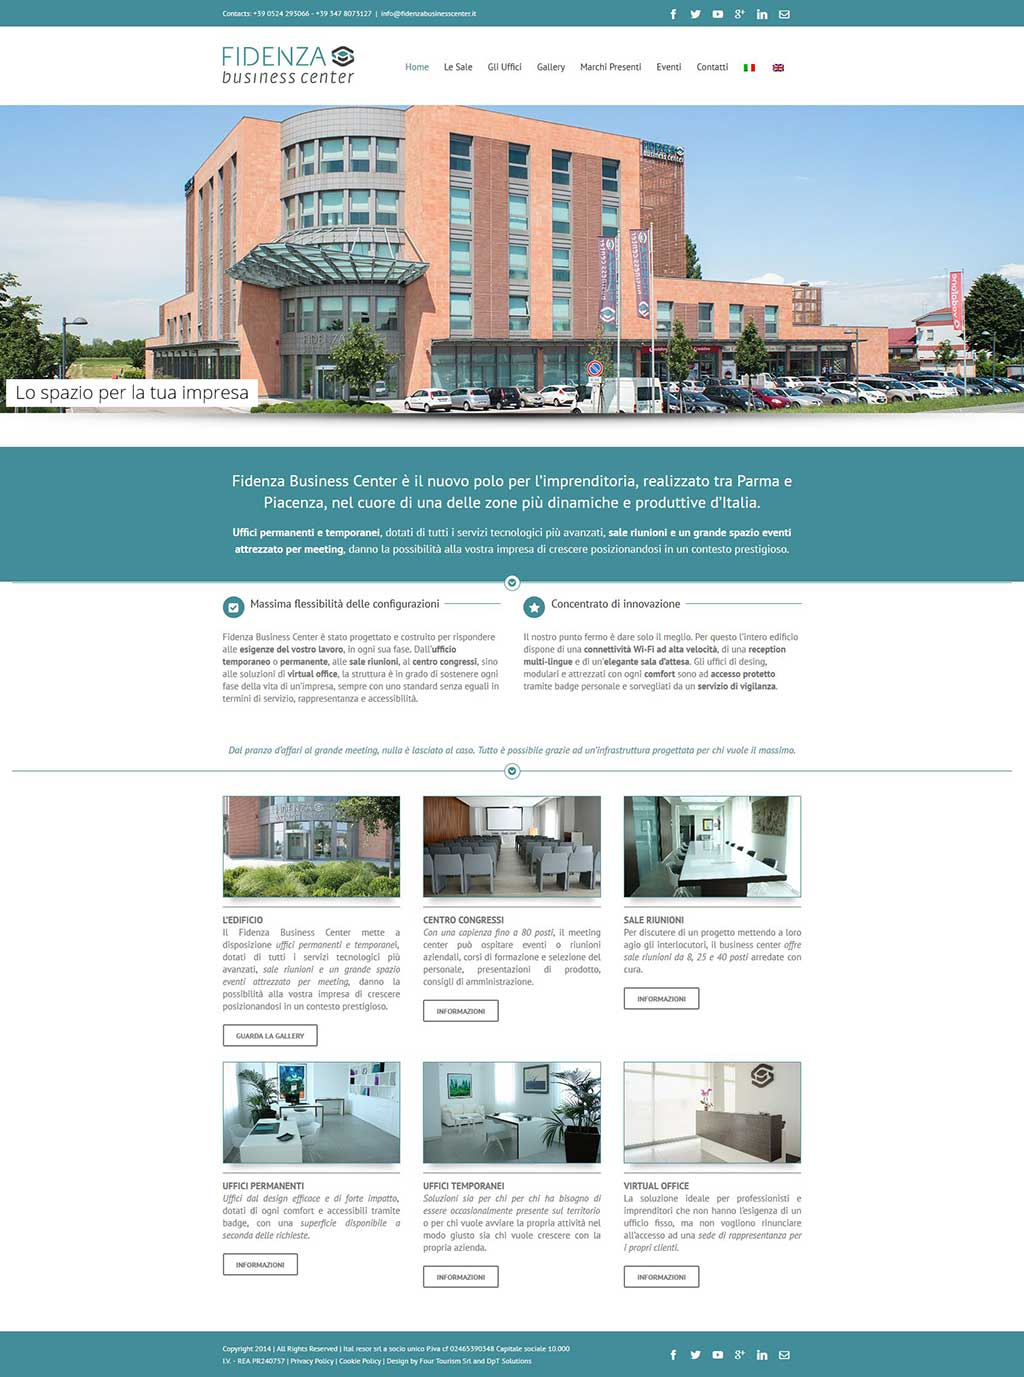 Fidenza Business Center website centro congressi